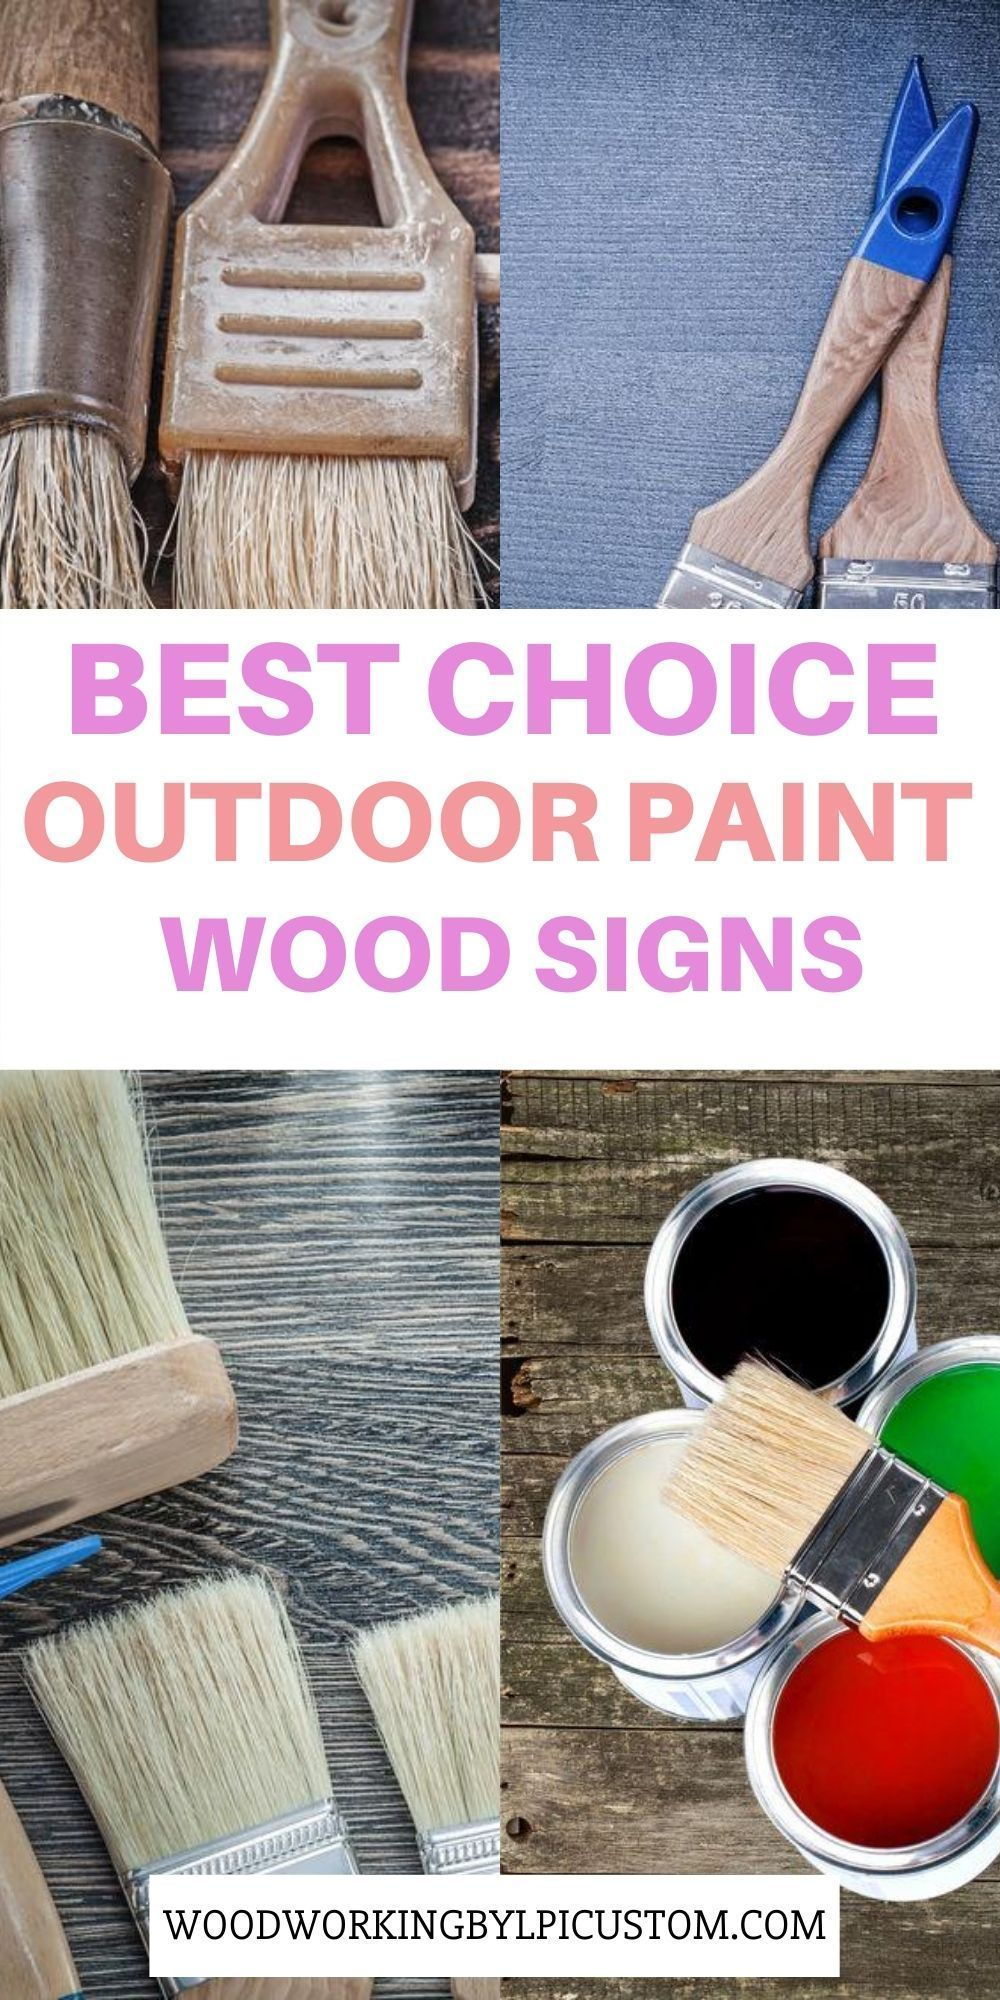 Best Choice Outdoor Paint Wood Signs In 2020 Painted Wood Signs Wood Signs Wooden Signs Diy